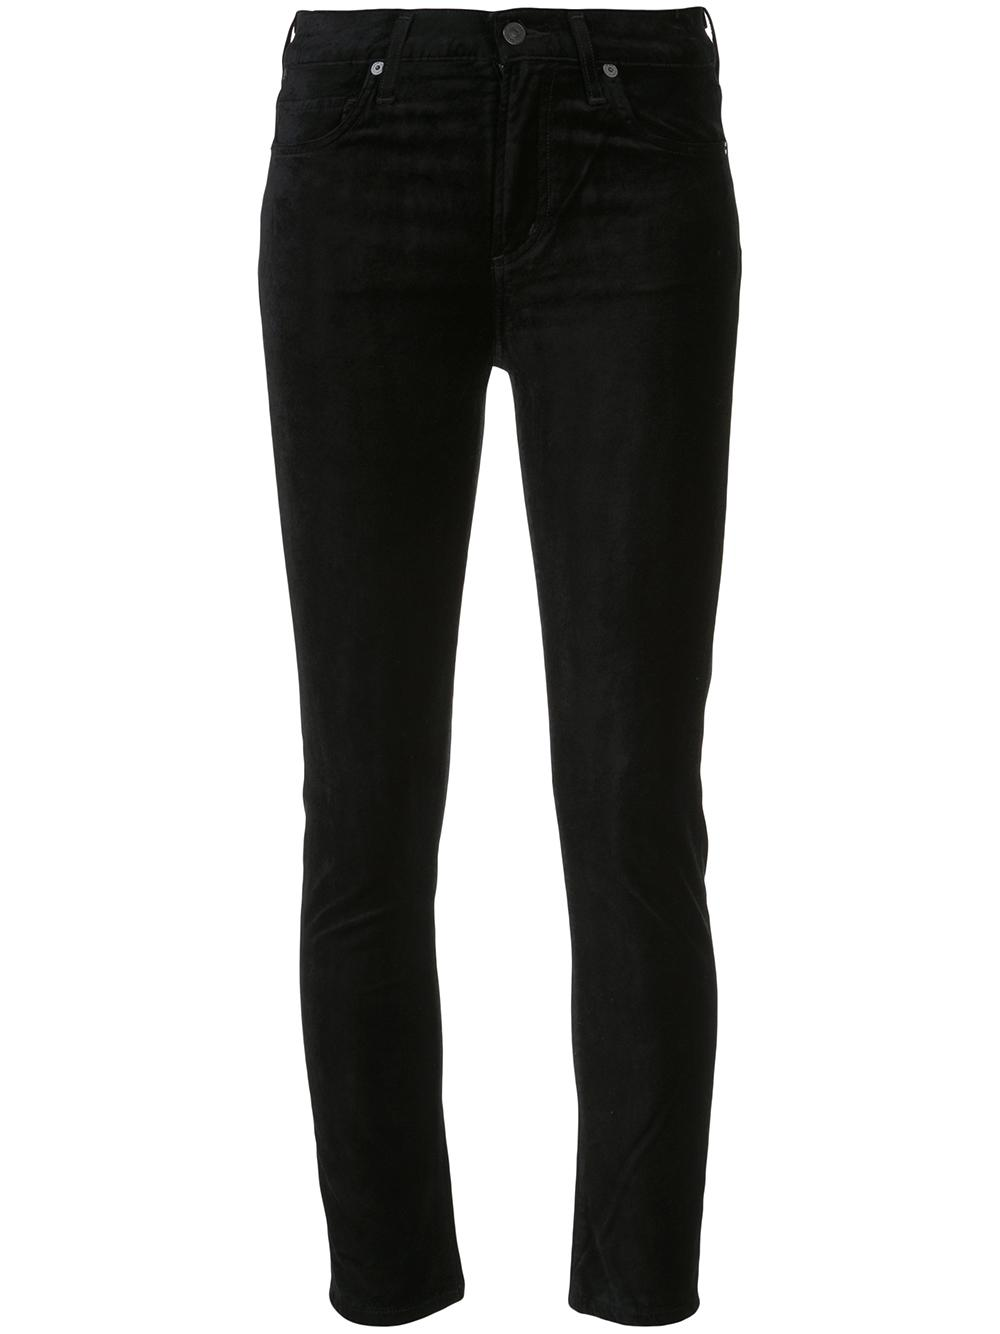 Harlow Velour Ankle Mid Rise Skinny